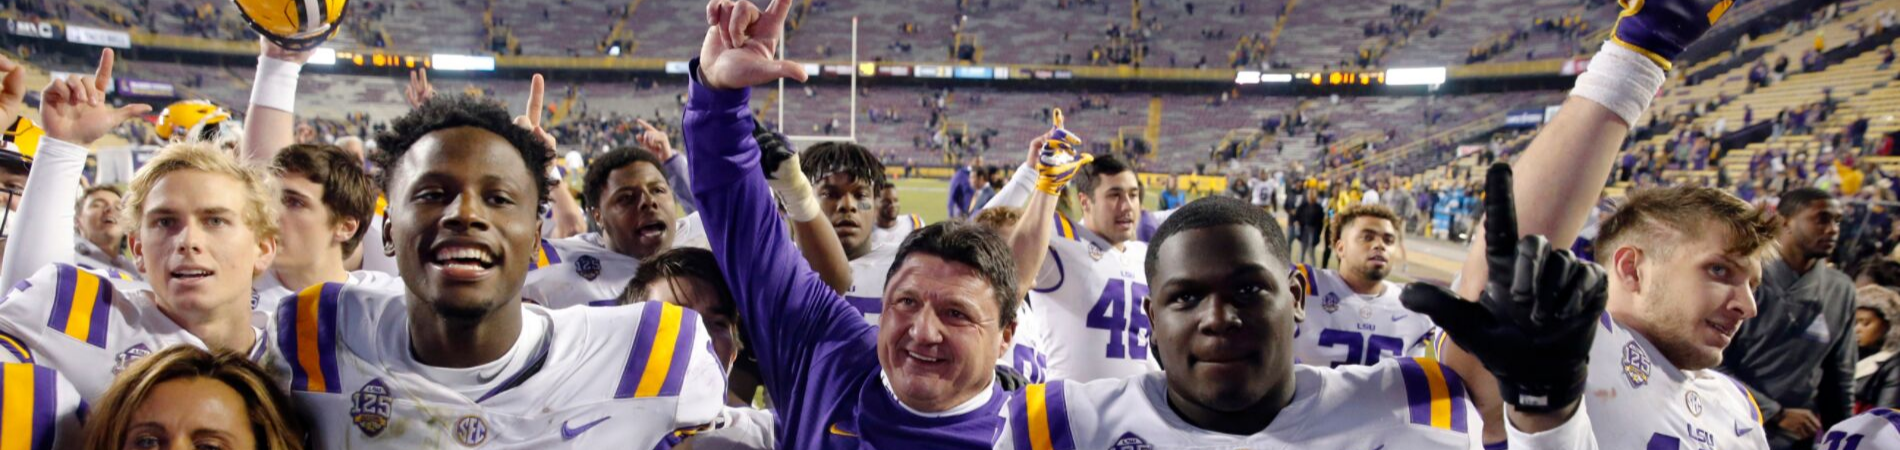 Louisiana State Tigers football